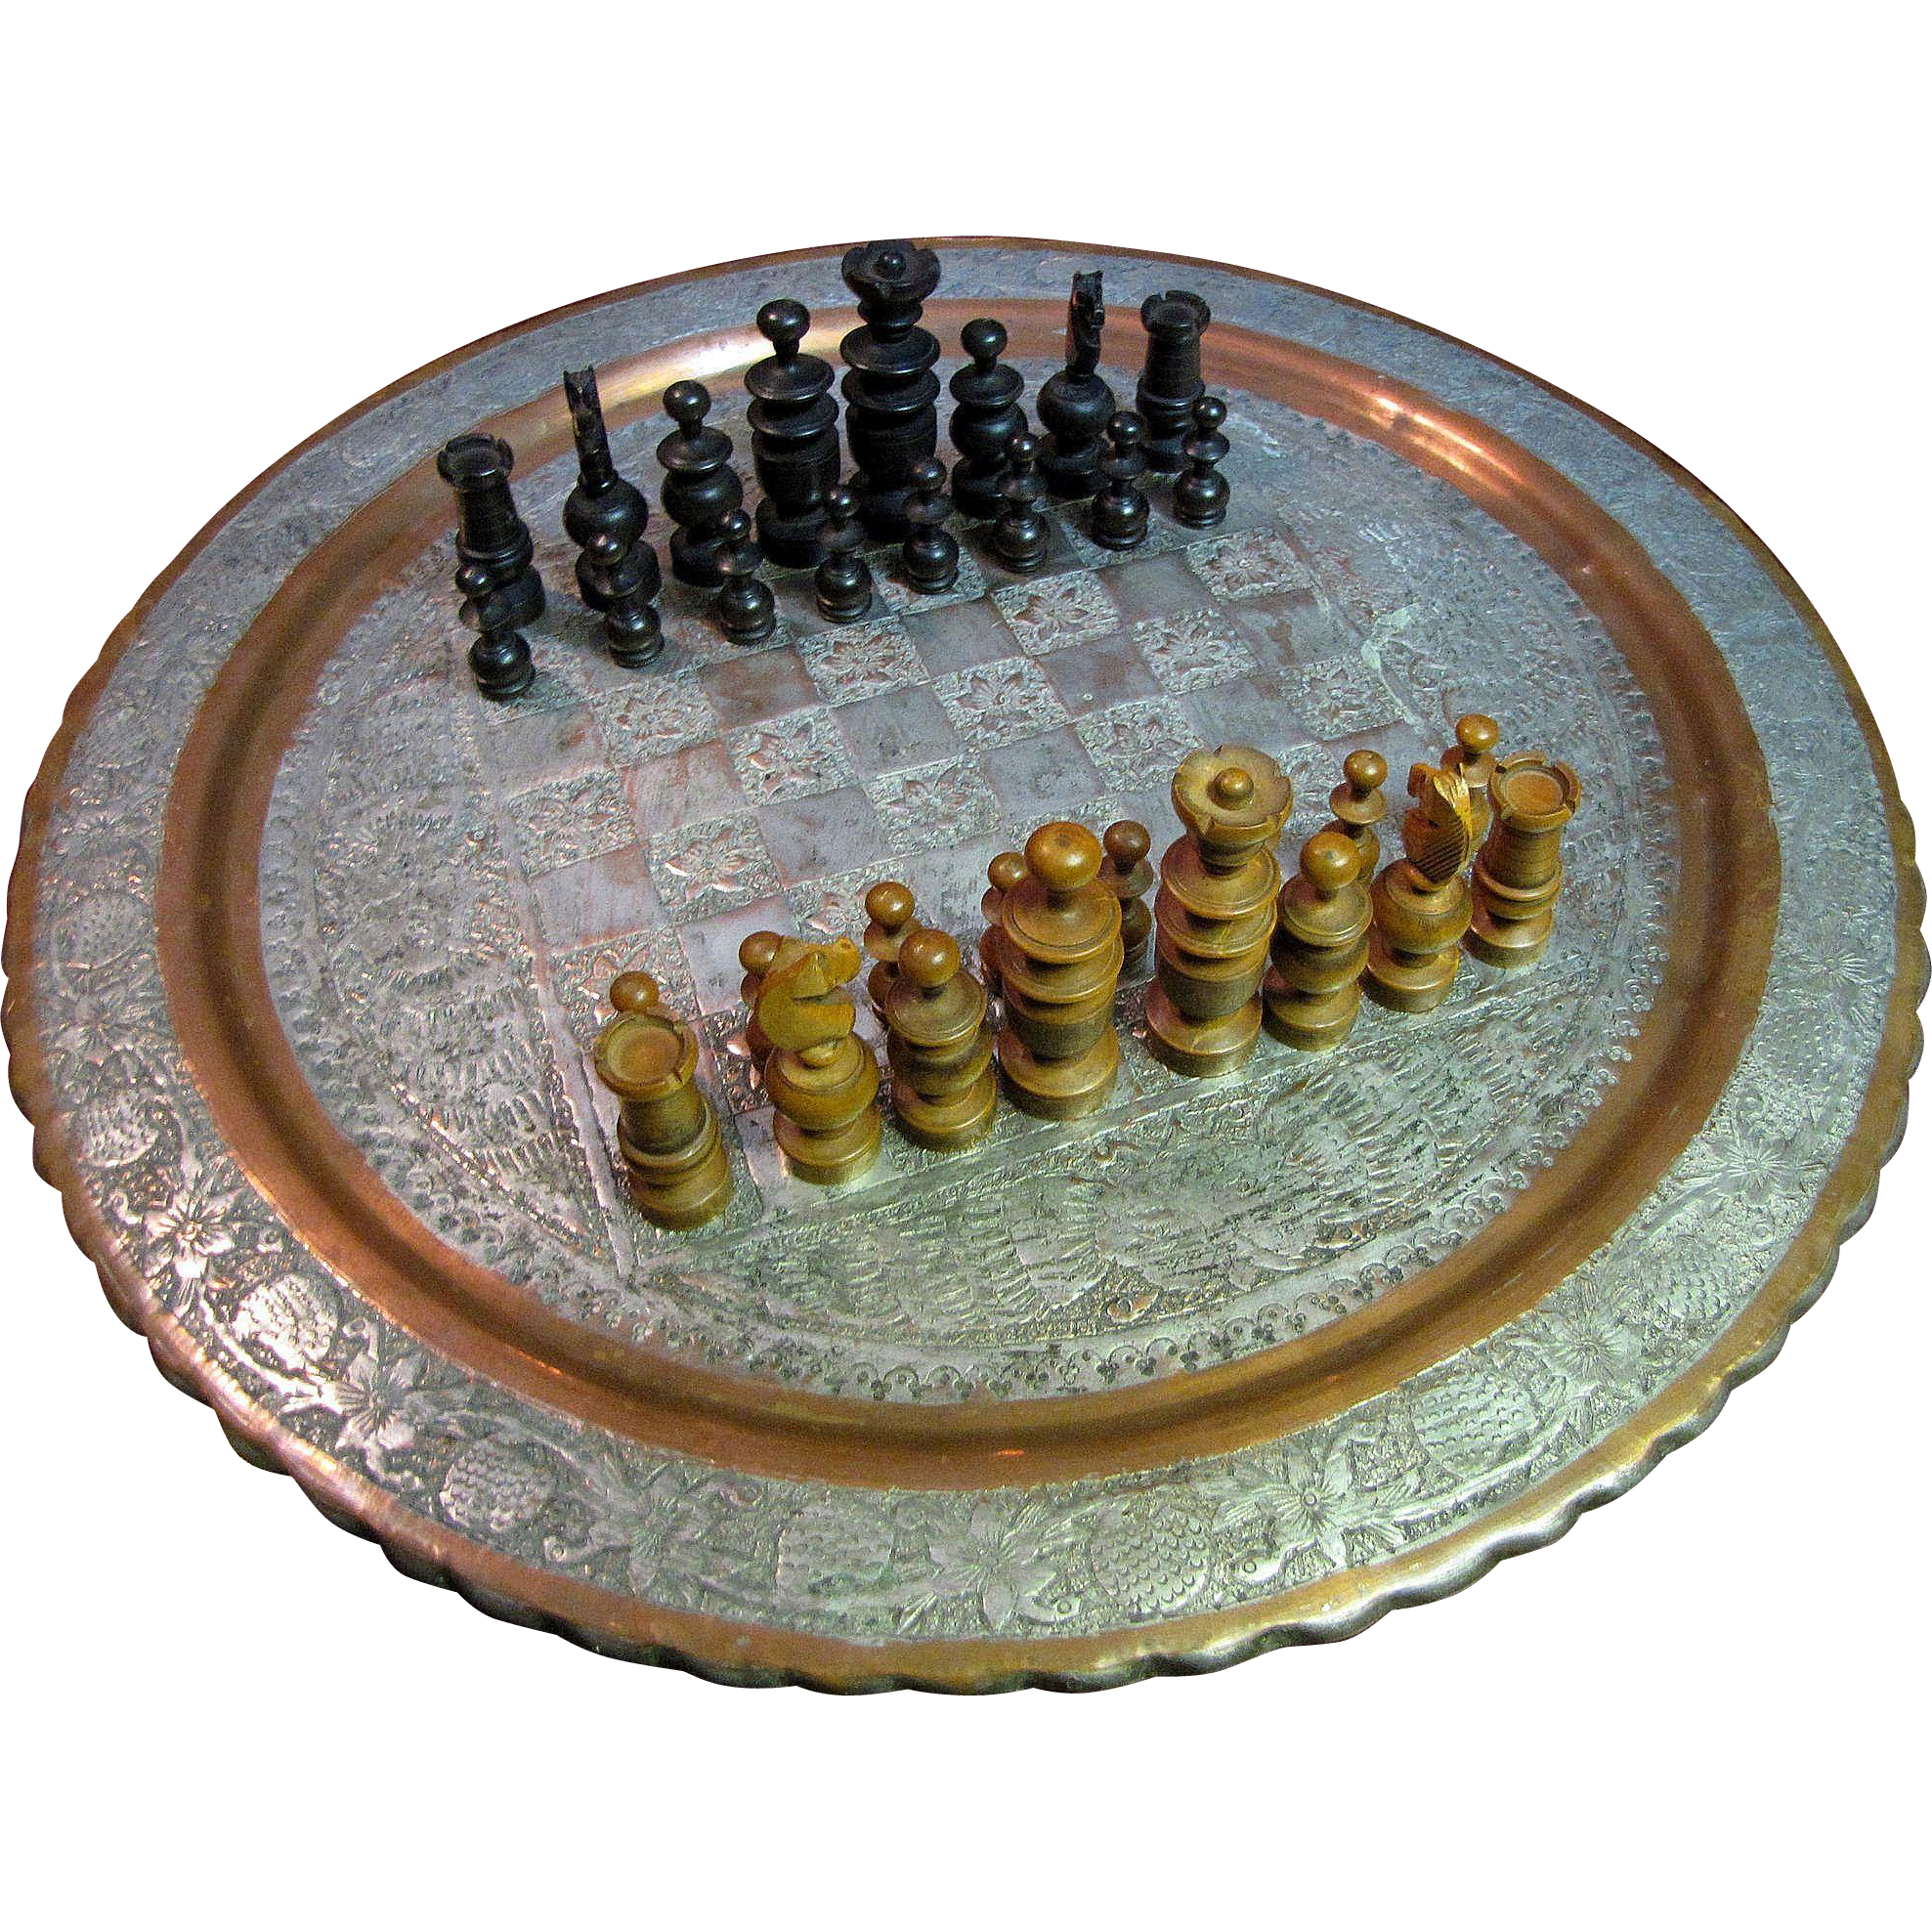 Etonnant Antique Persian Copper Tray Table Top Chess Board : Fay Wray Antiques |  Ruby Lane